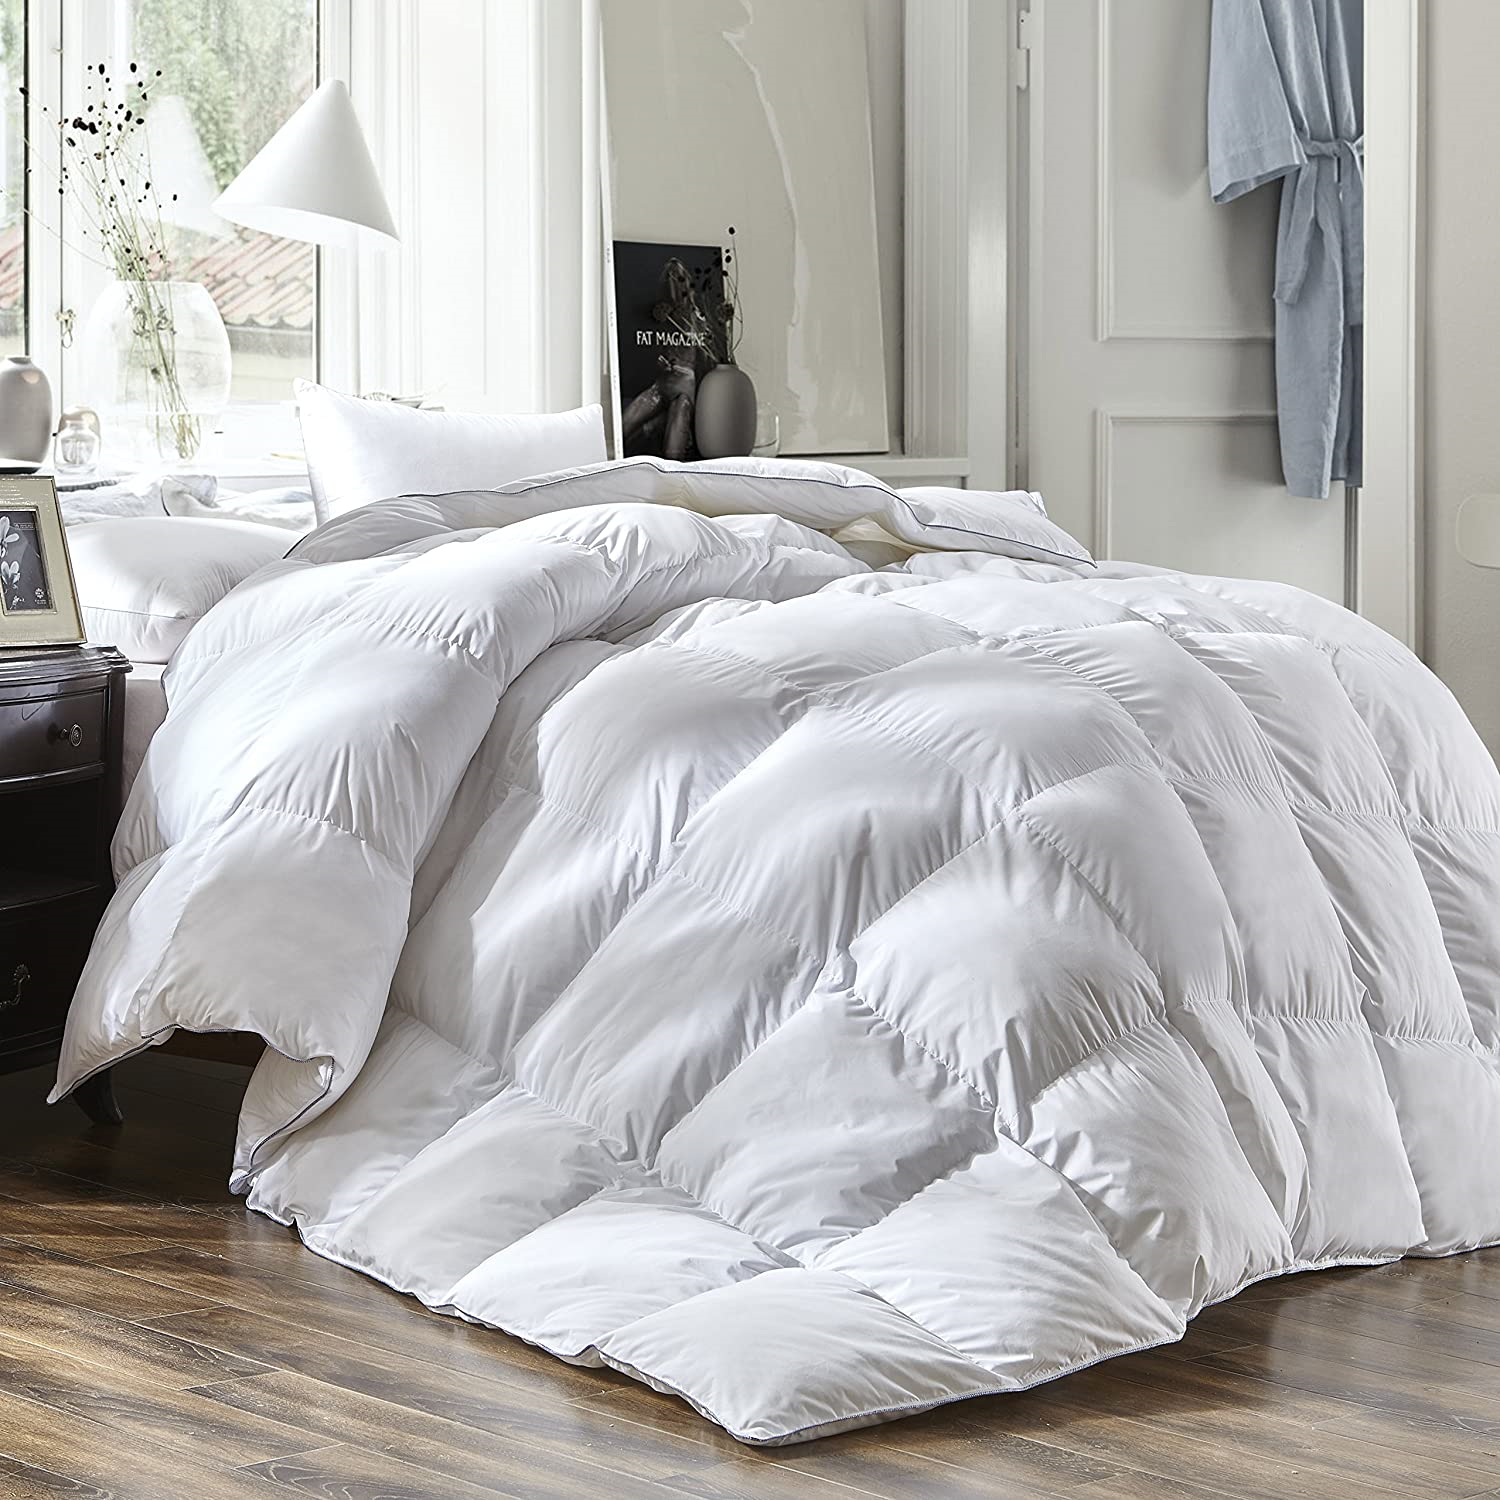 THREE GEESE Luxury King Size White Goose Down Feather Comforter Duvet Insert All 713741589863 | eBay